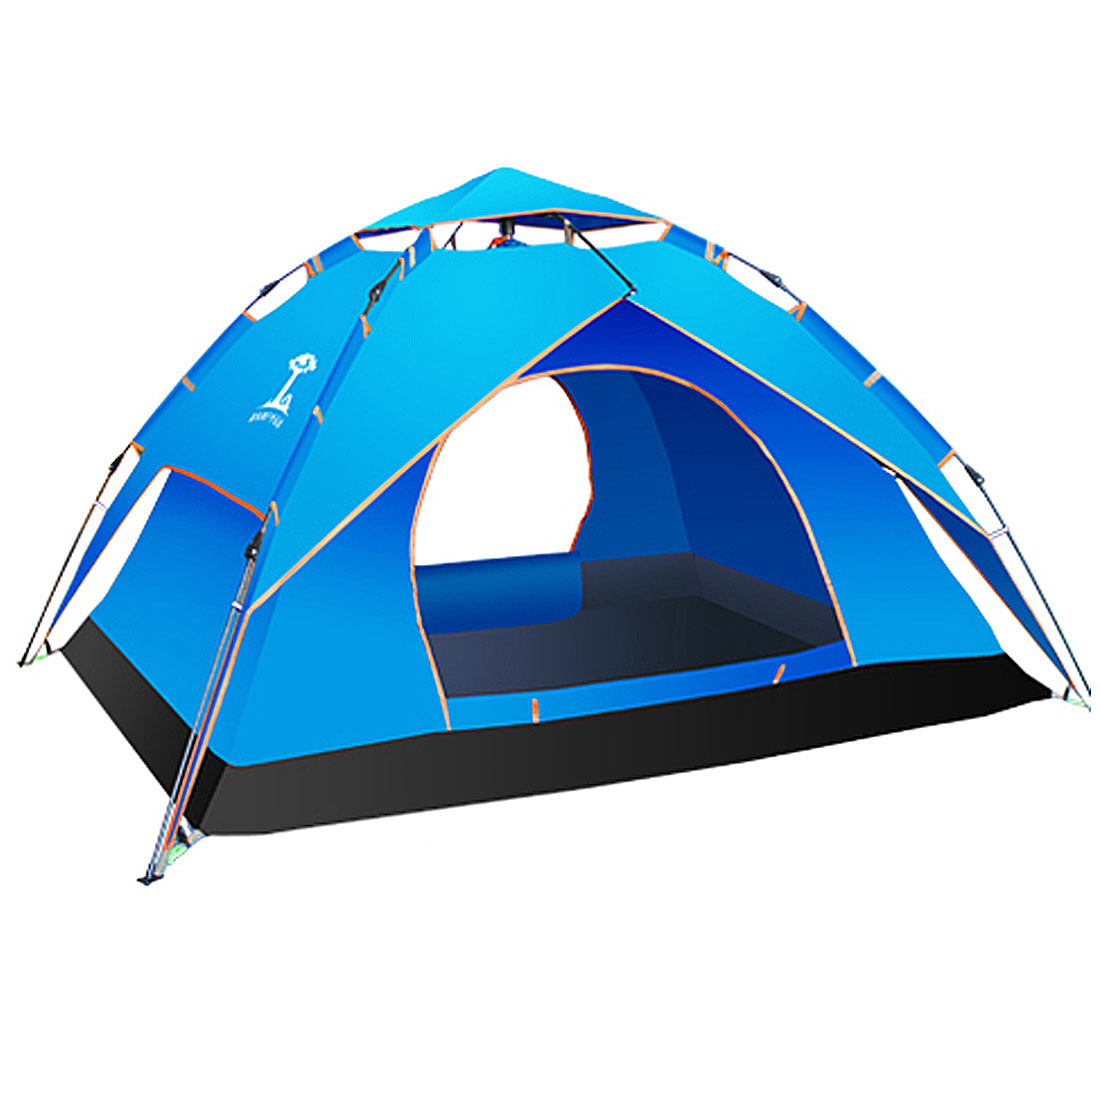 Automatic Double Layer Dome Tent Family C&ing Hiking Instant Tents 3 Person Blue  sc 1 st  Walmart Canada & Automatic Double Layer Dome Tent Family Camping Hiking Instant Tents ...